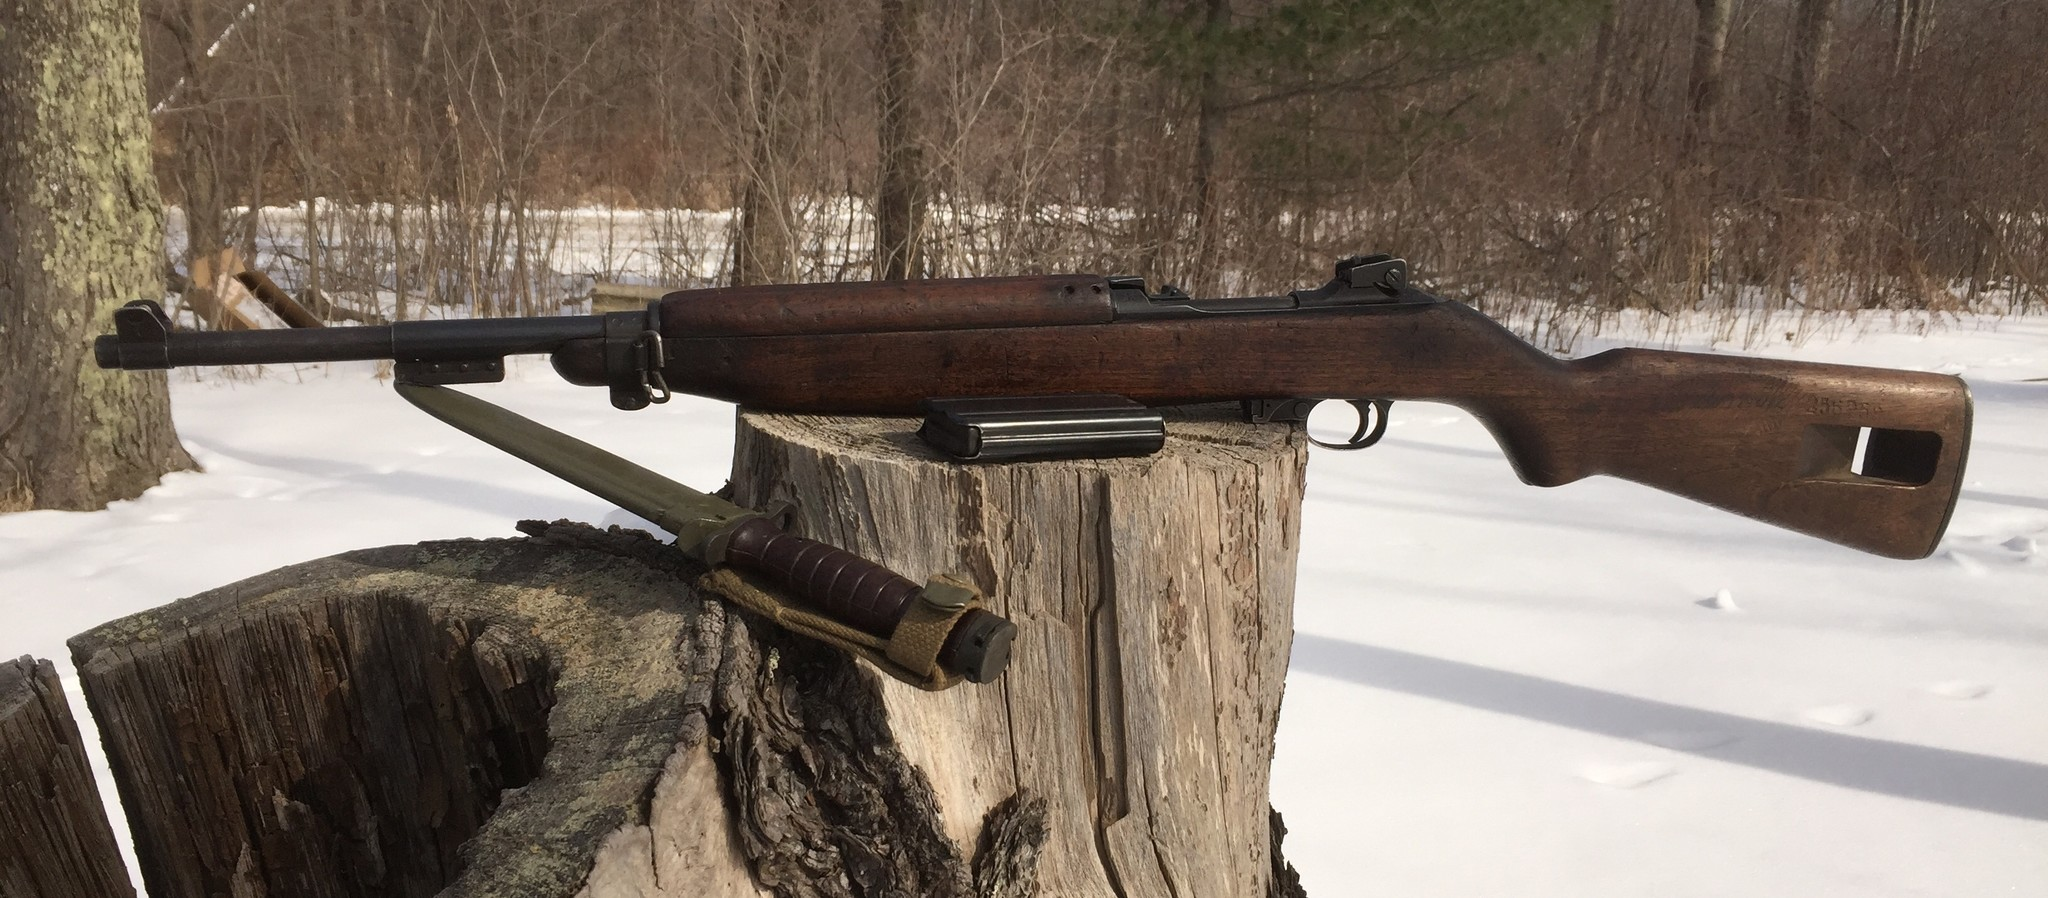 "M1 CARBINE SURPLUS c.30 CARBINE 18"" BBL WOOD STOCK Restricted"